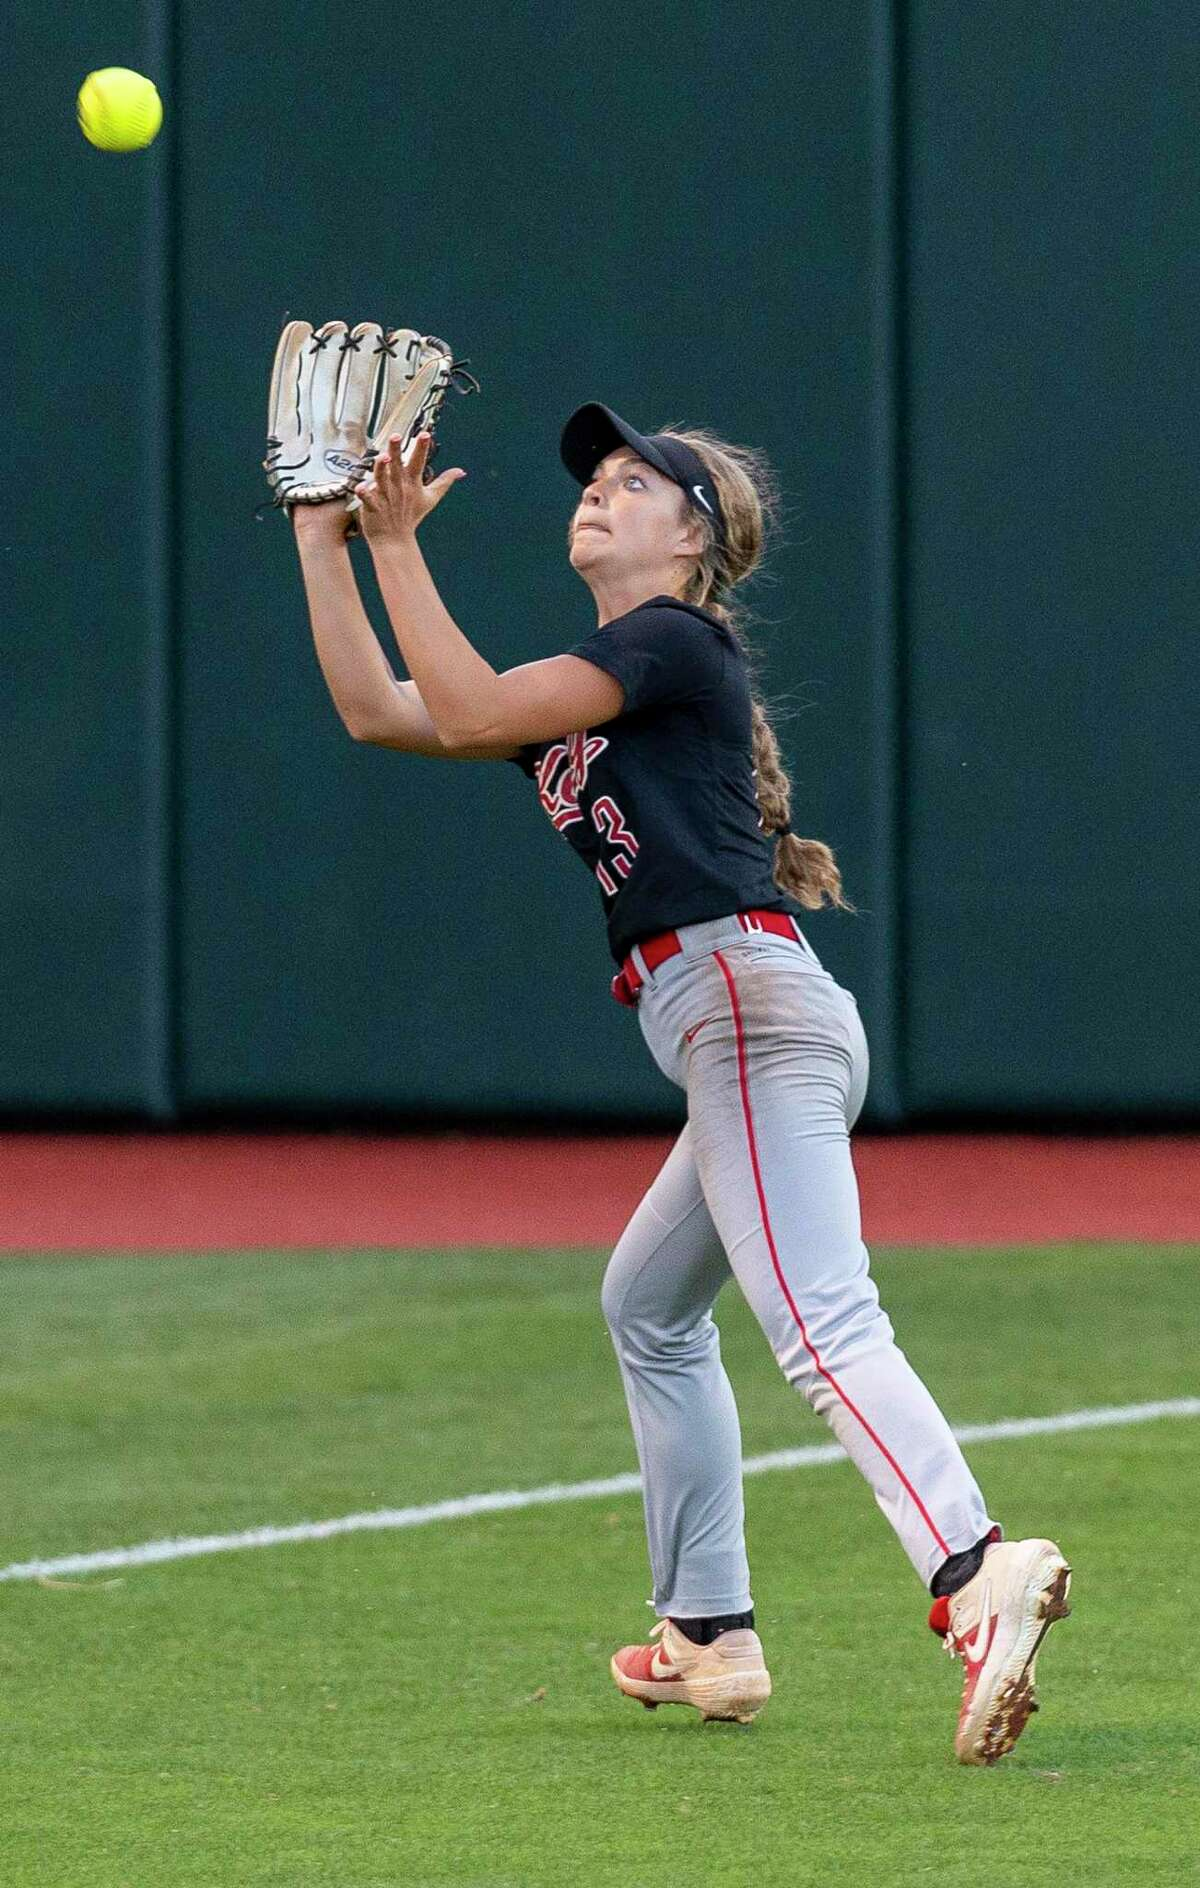 Katy left fielder Kailey Wyckoff (13) makes the Keller out during the UIL Class 6A state softball semifinal in Austin, Friday, May 31, 2019.(Stephen Spillman / for Houston Chronicle)